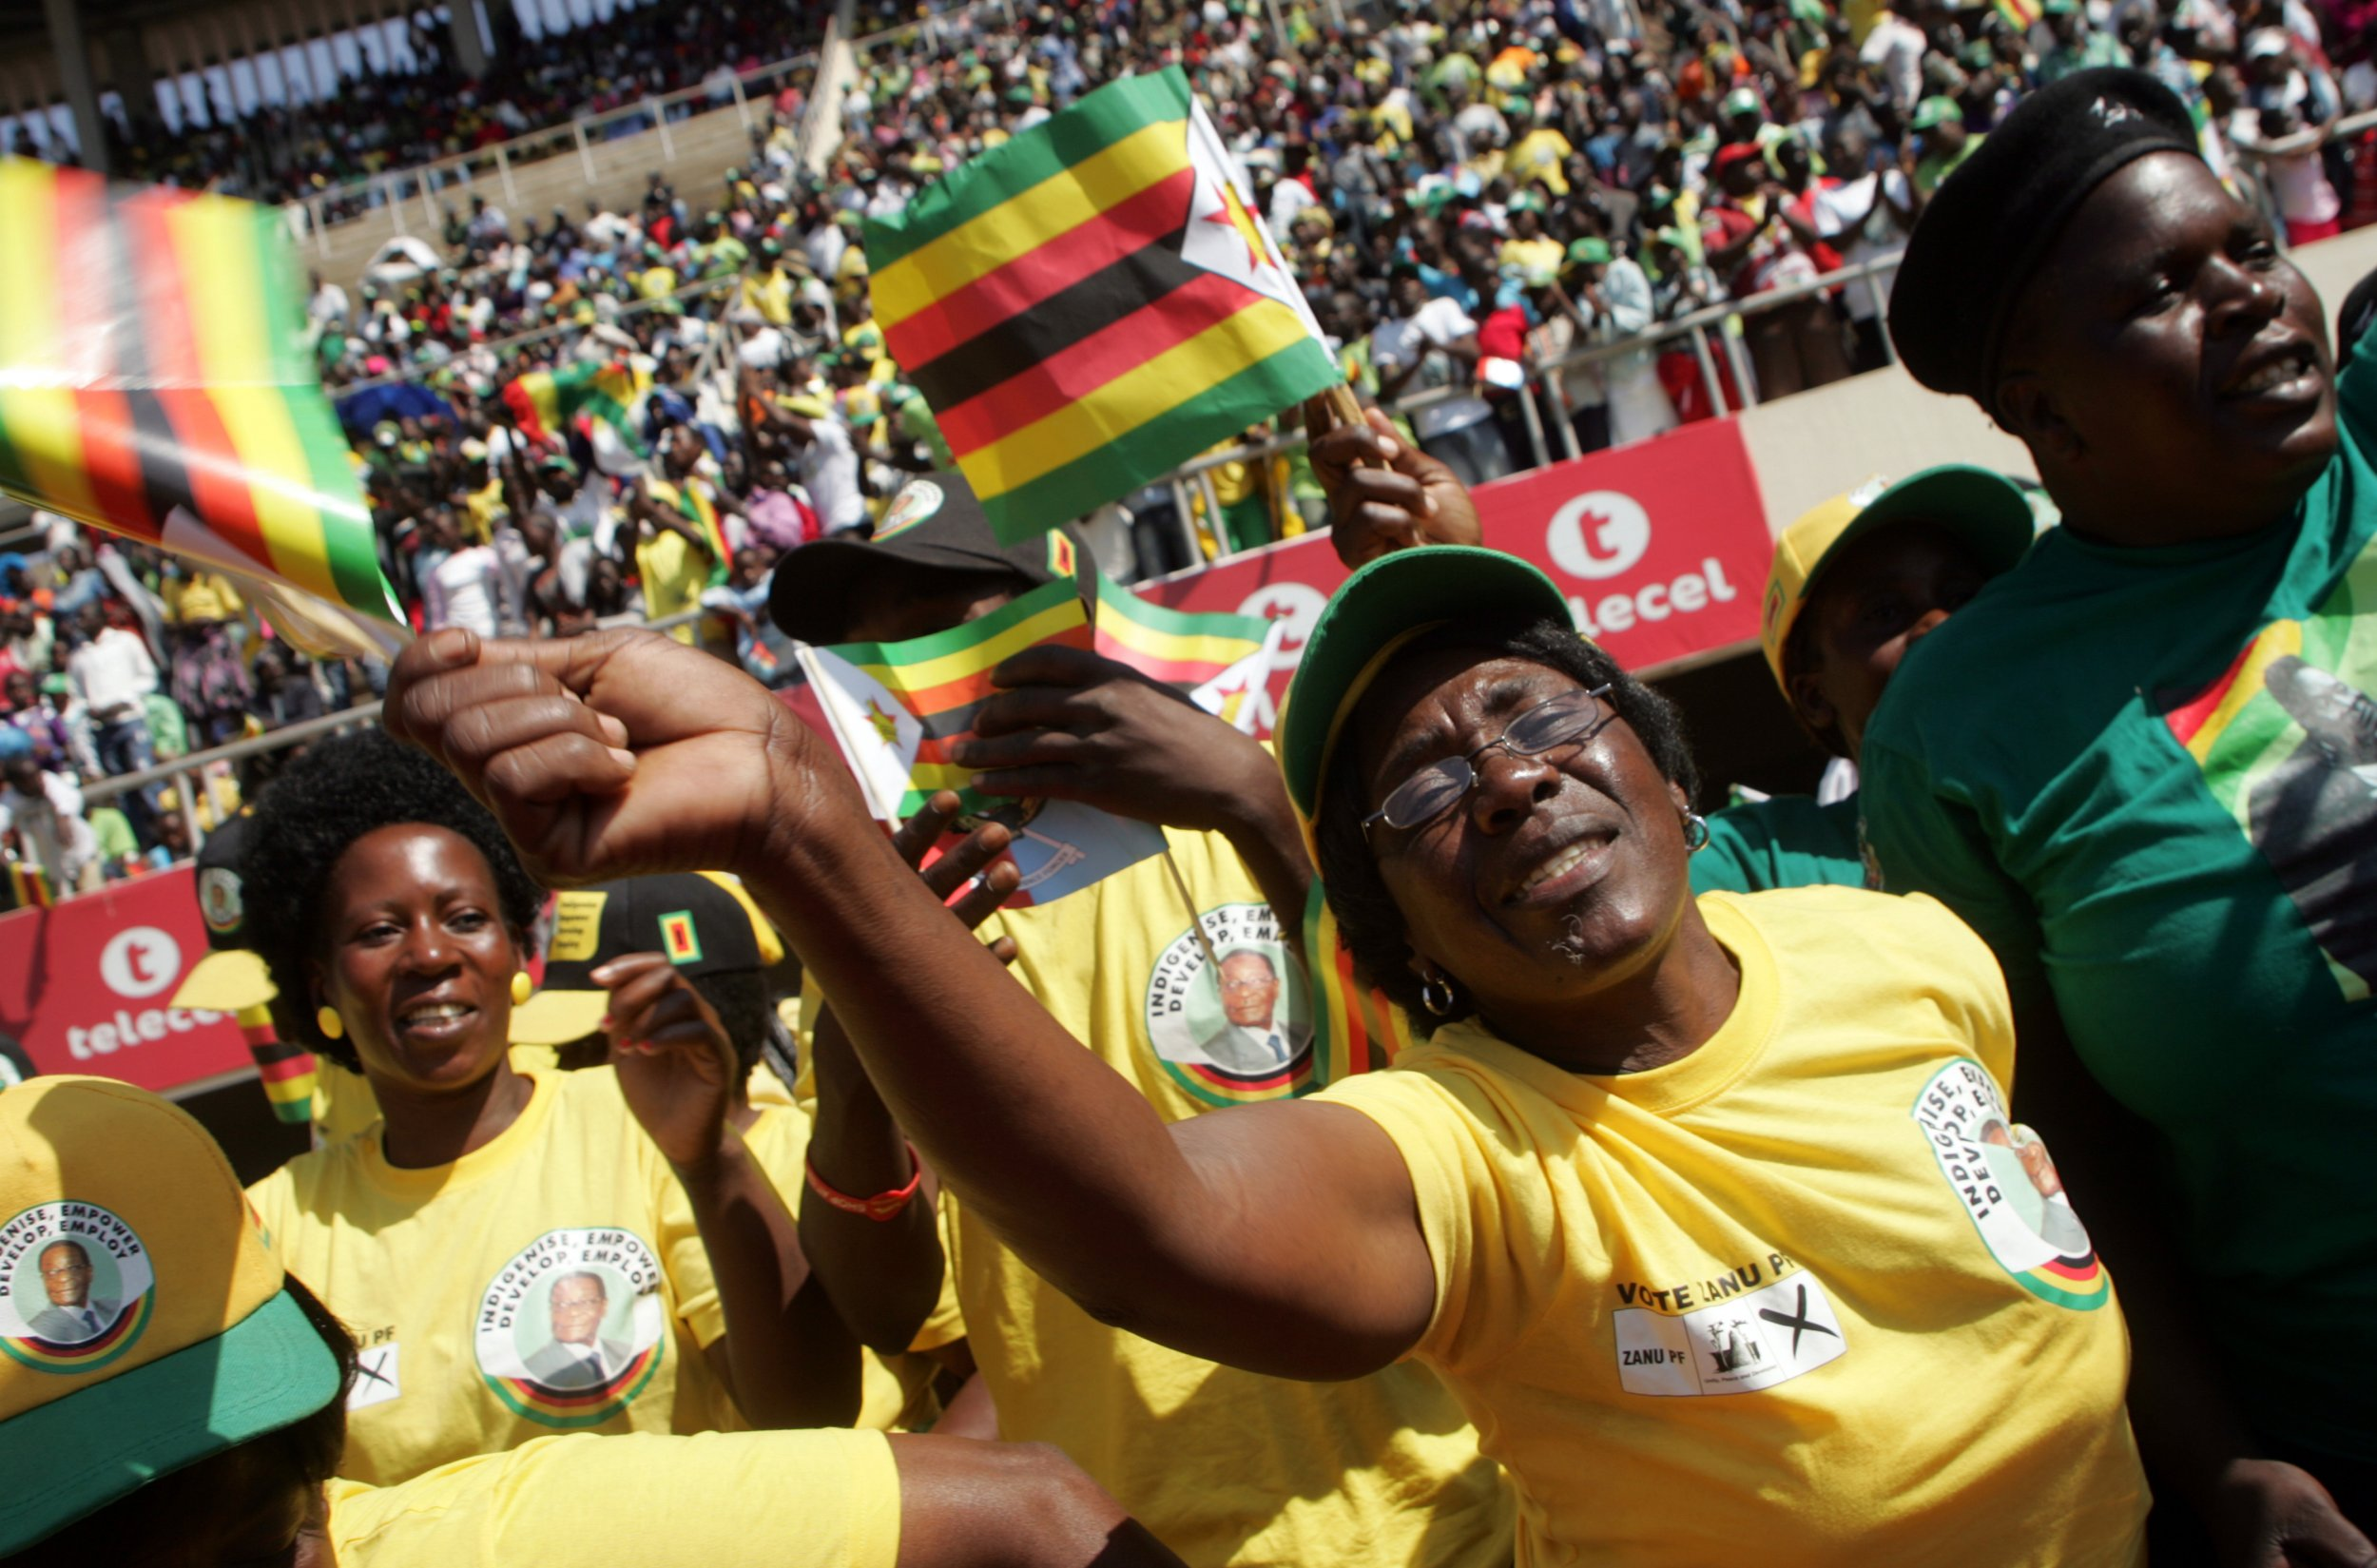 Supporters of Zimbabwe President Robert Mugabe cheer.